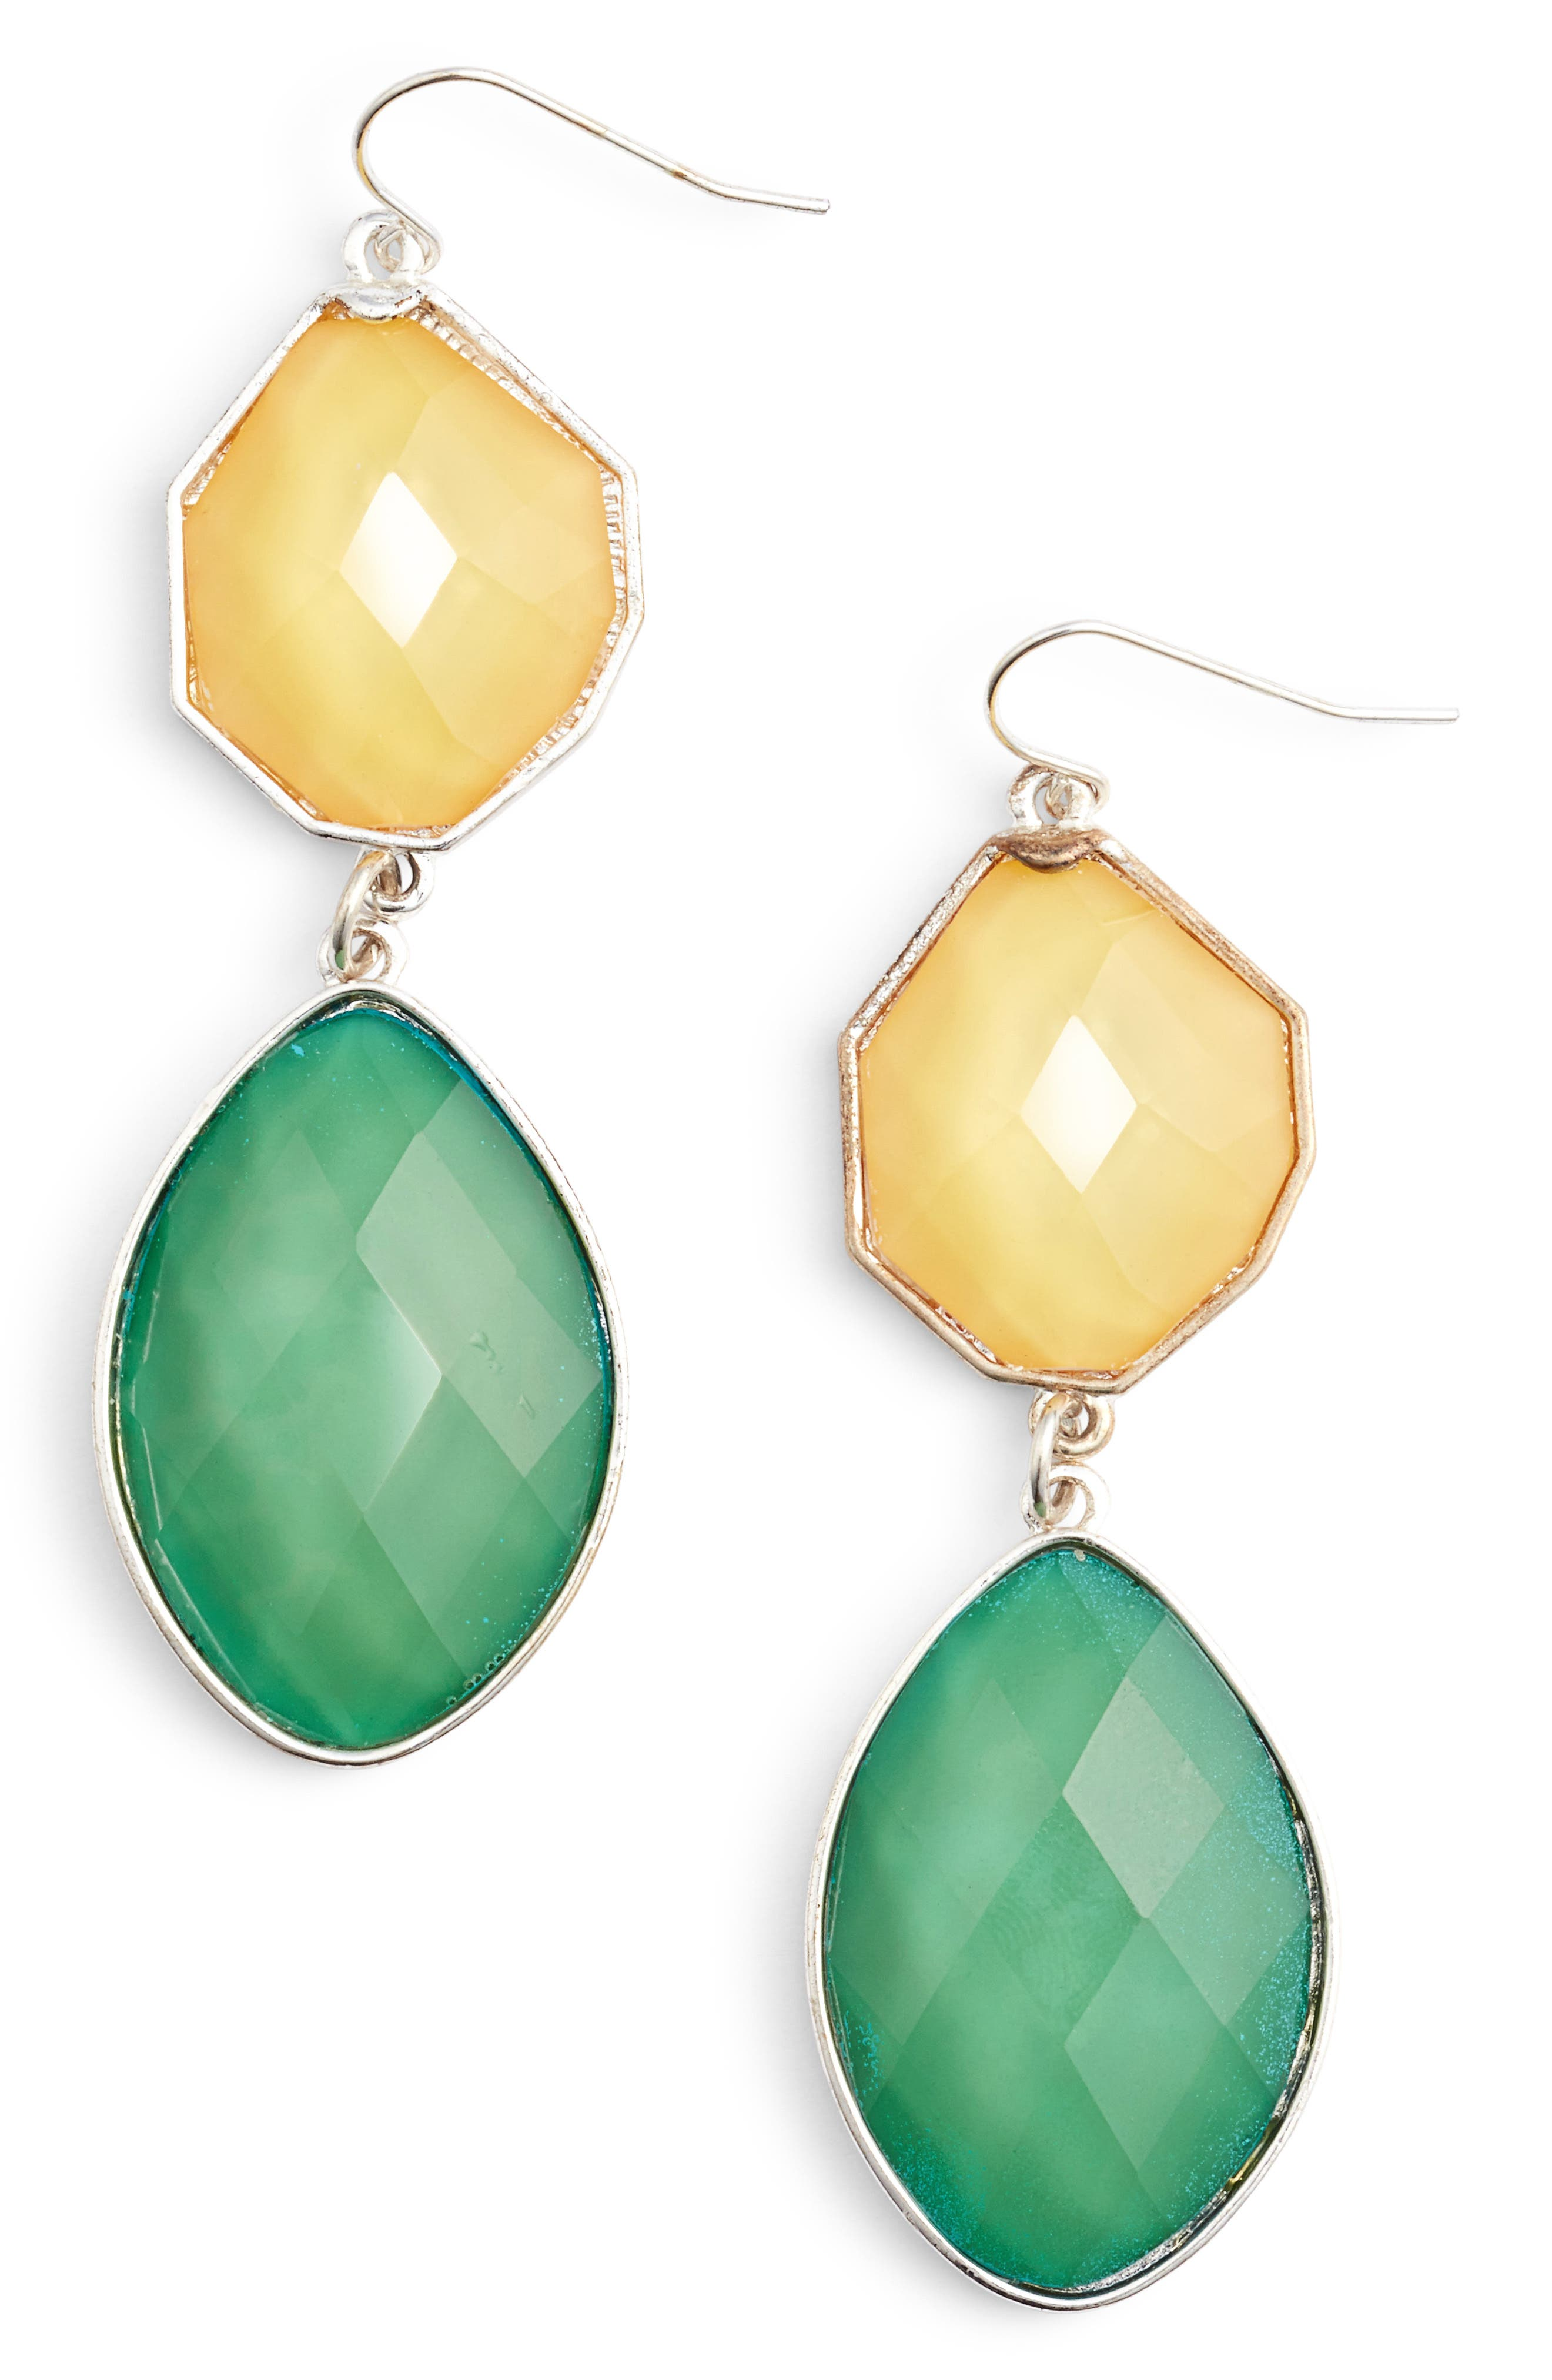 Stone Drop Earrings,                         Main,                         color, Light Green/ Yellow